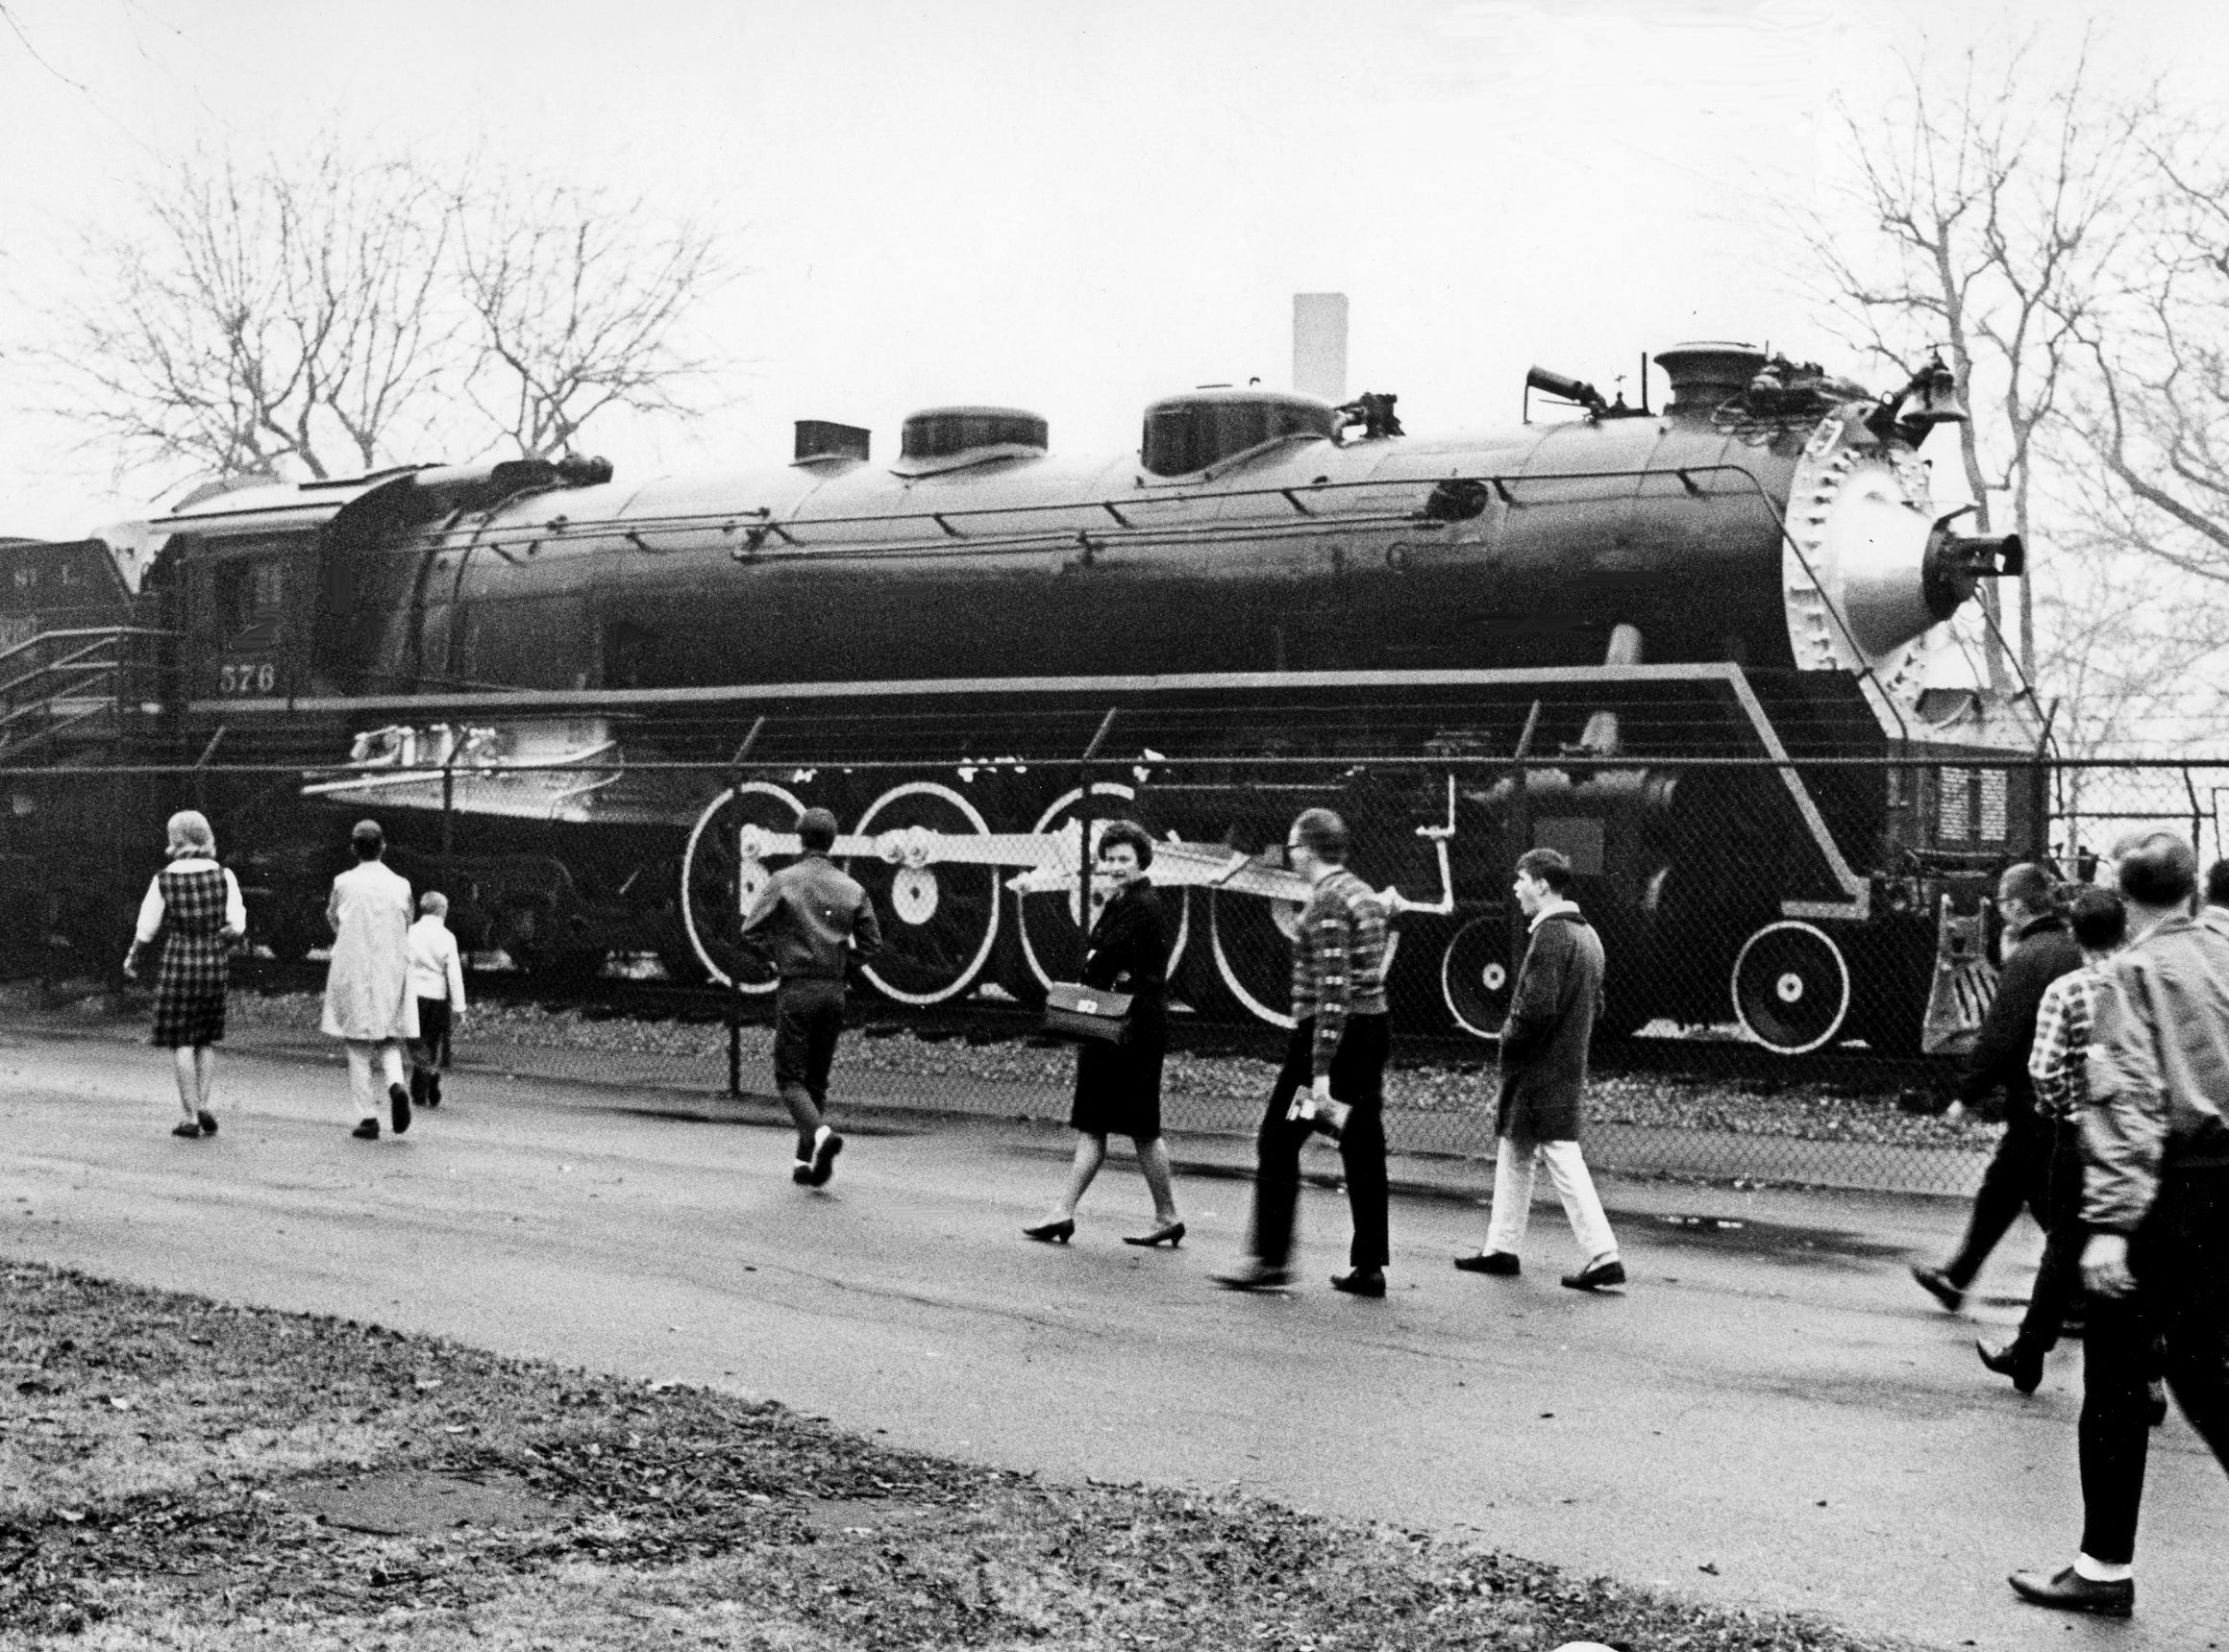 Steam locomotive No. 576, here Jan. 14, 1966, may no longer roll along the tracks, but it can still catch the interests of children, young and old, on a trip to Centennial Park.